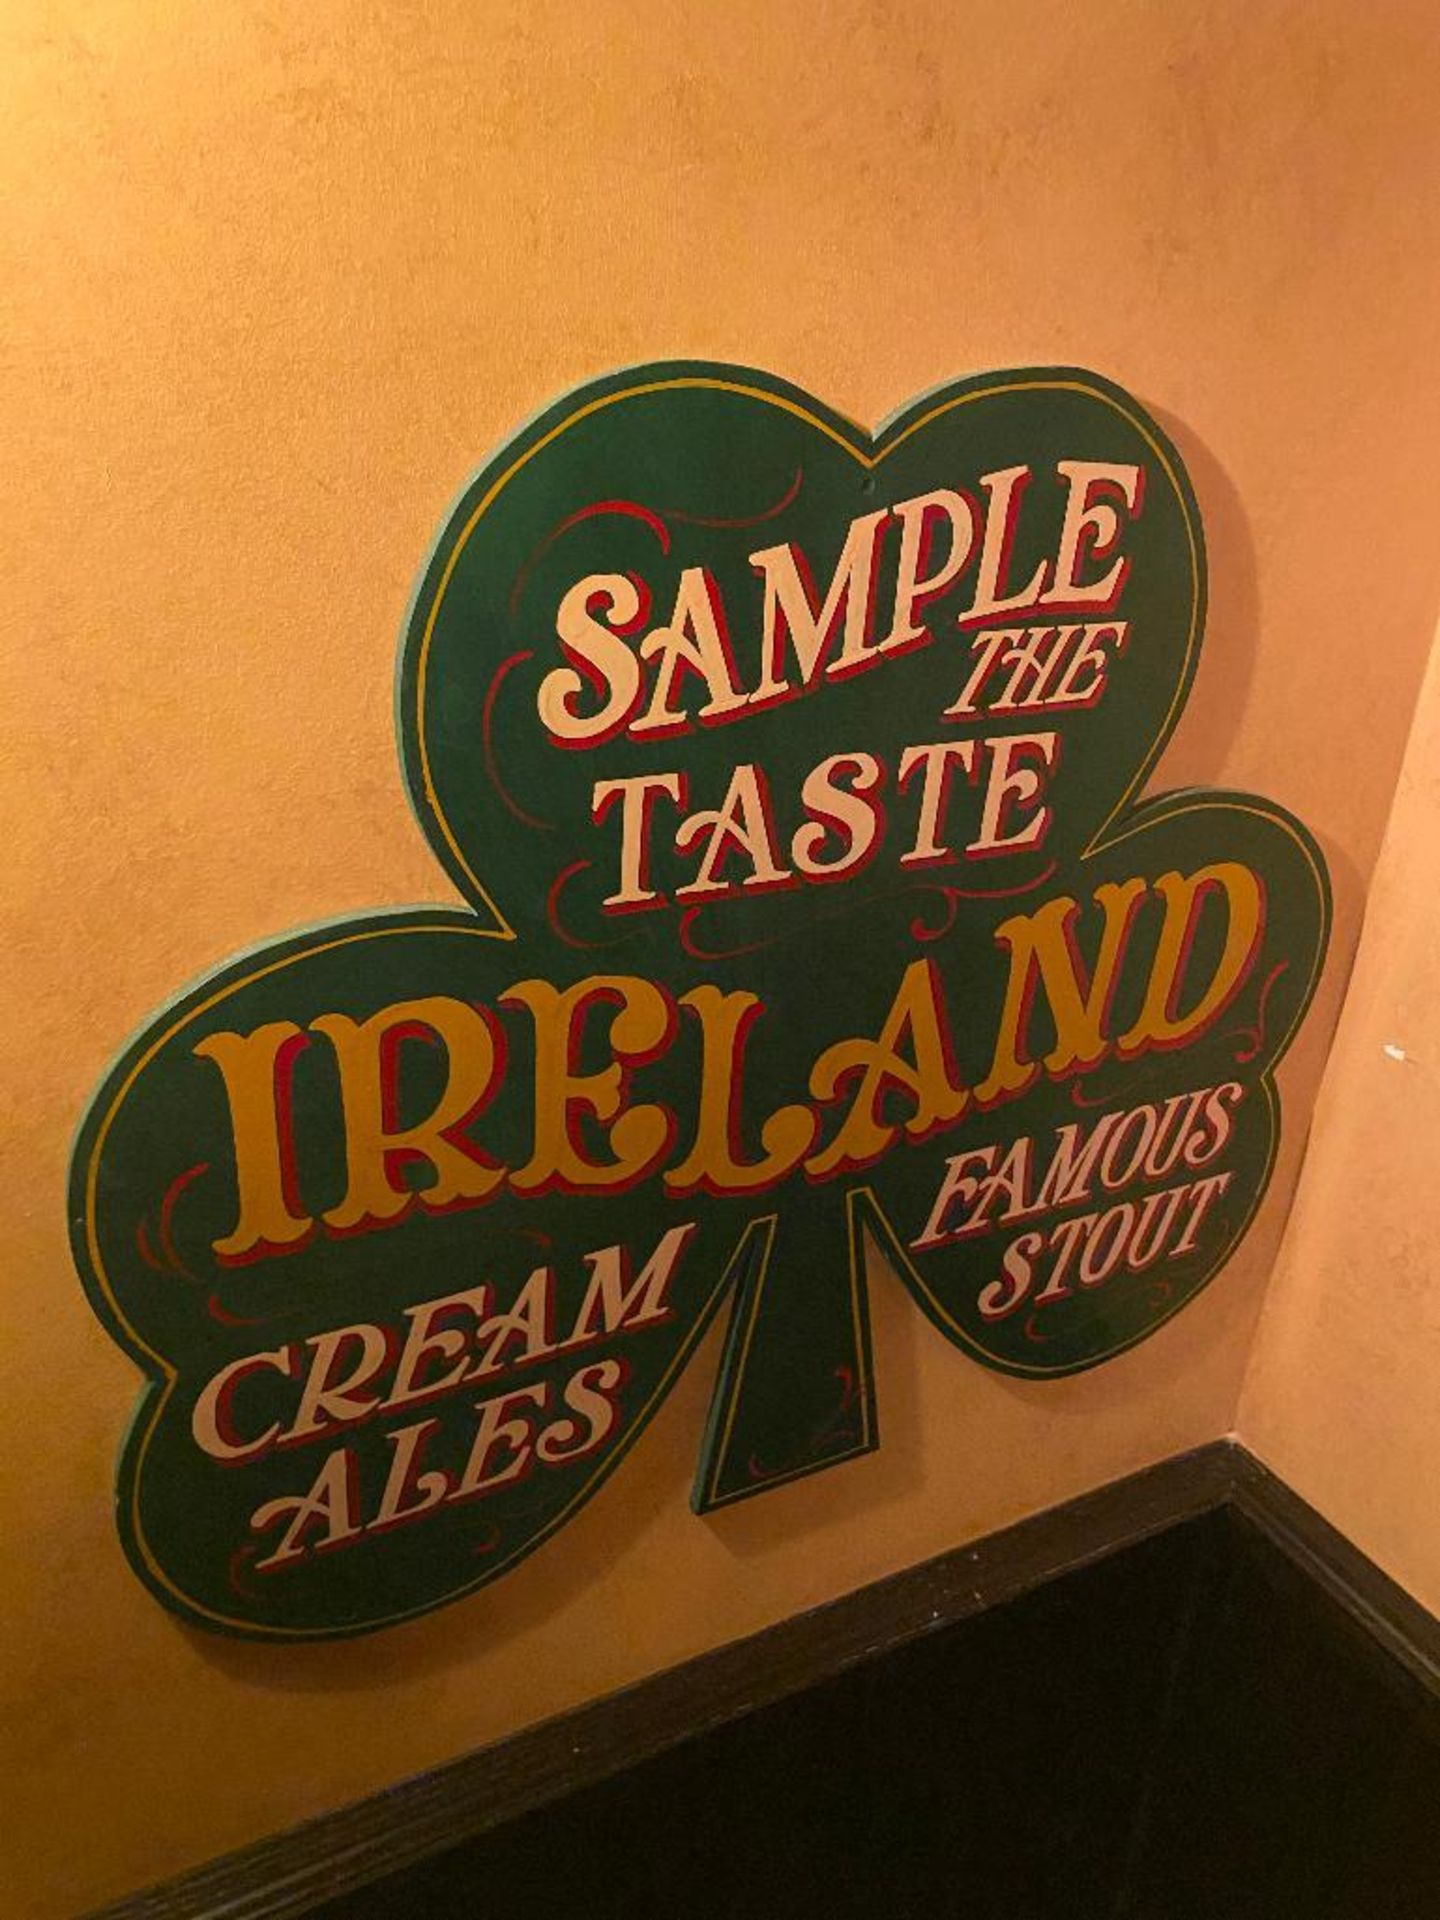 LOT OF (3) FRAMED MEMORABILIA PHOTOS & (1) SAMPLE THE TASTE IRELAND PLAQUE - NOTE: REQUIRES REMOVAL - Image 3 of 3